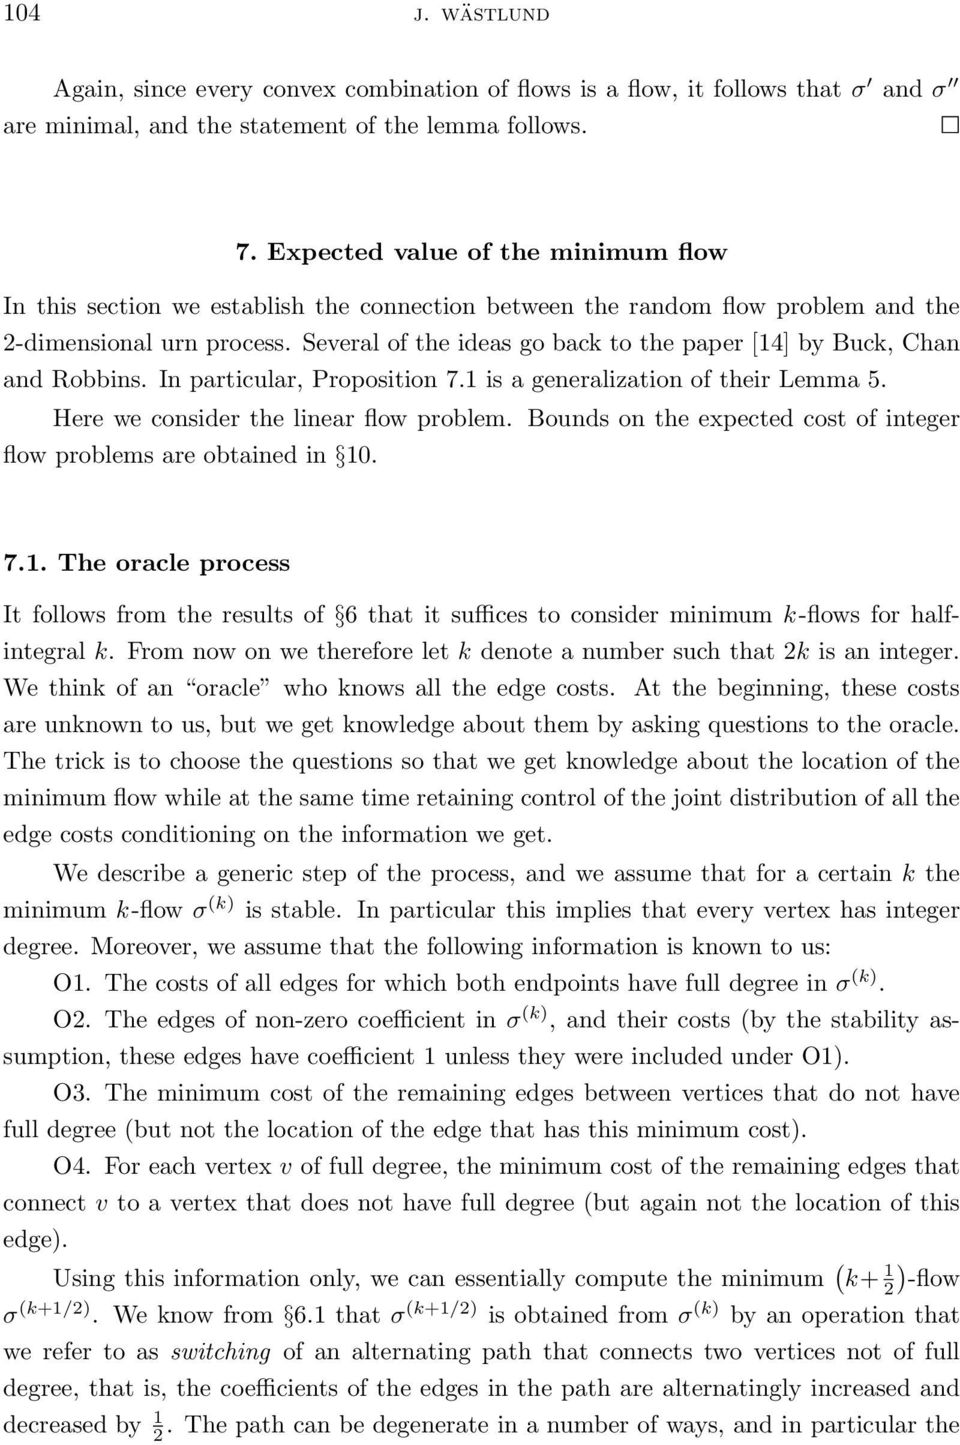 Several of the ideas go back to the paper [4] by Buck, Chan and Robbins. In particular, Proposition 7. is a generalization of their Lemma 5. Here we consider the linear flow problem.